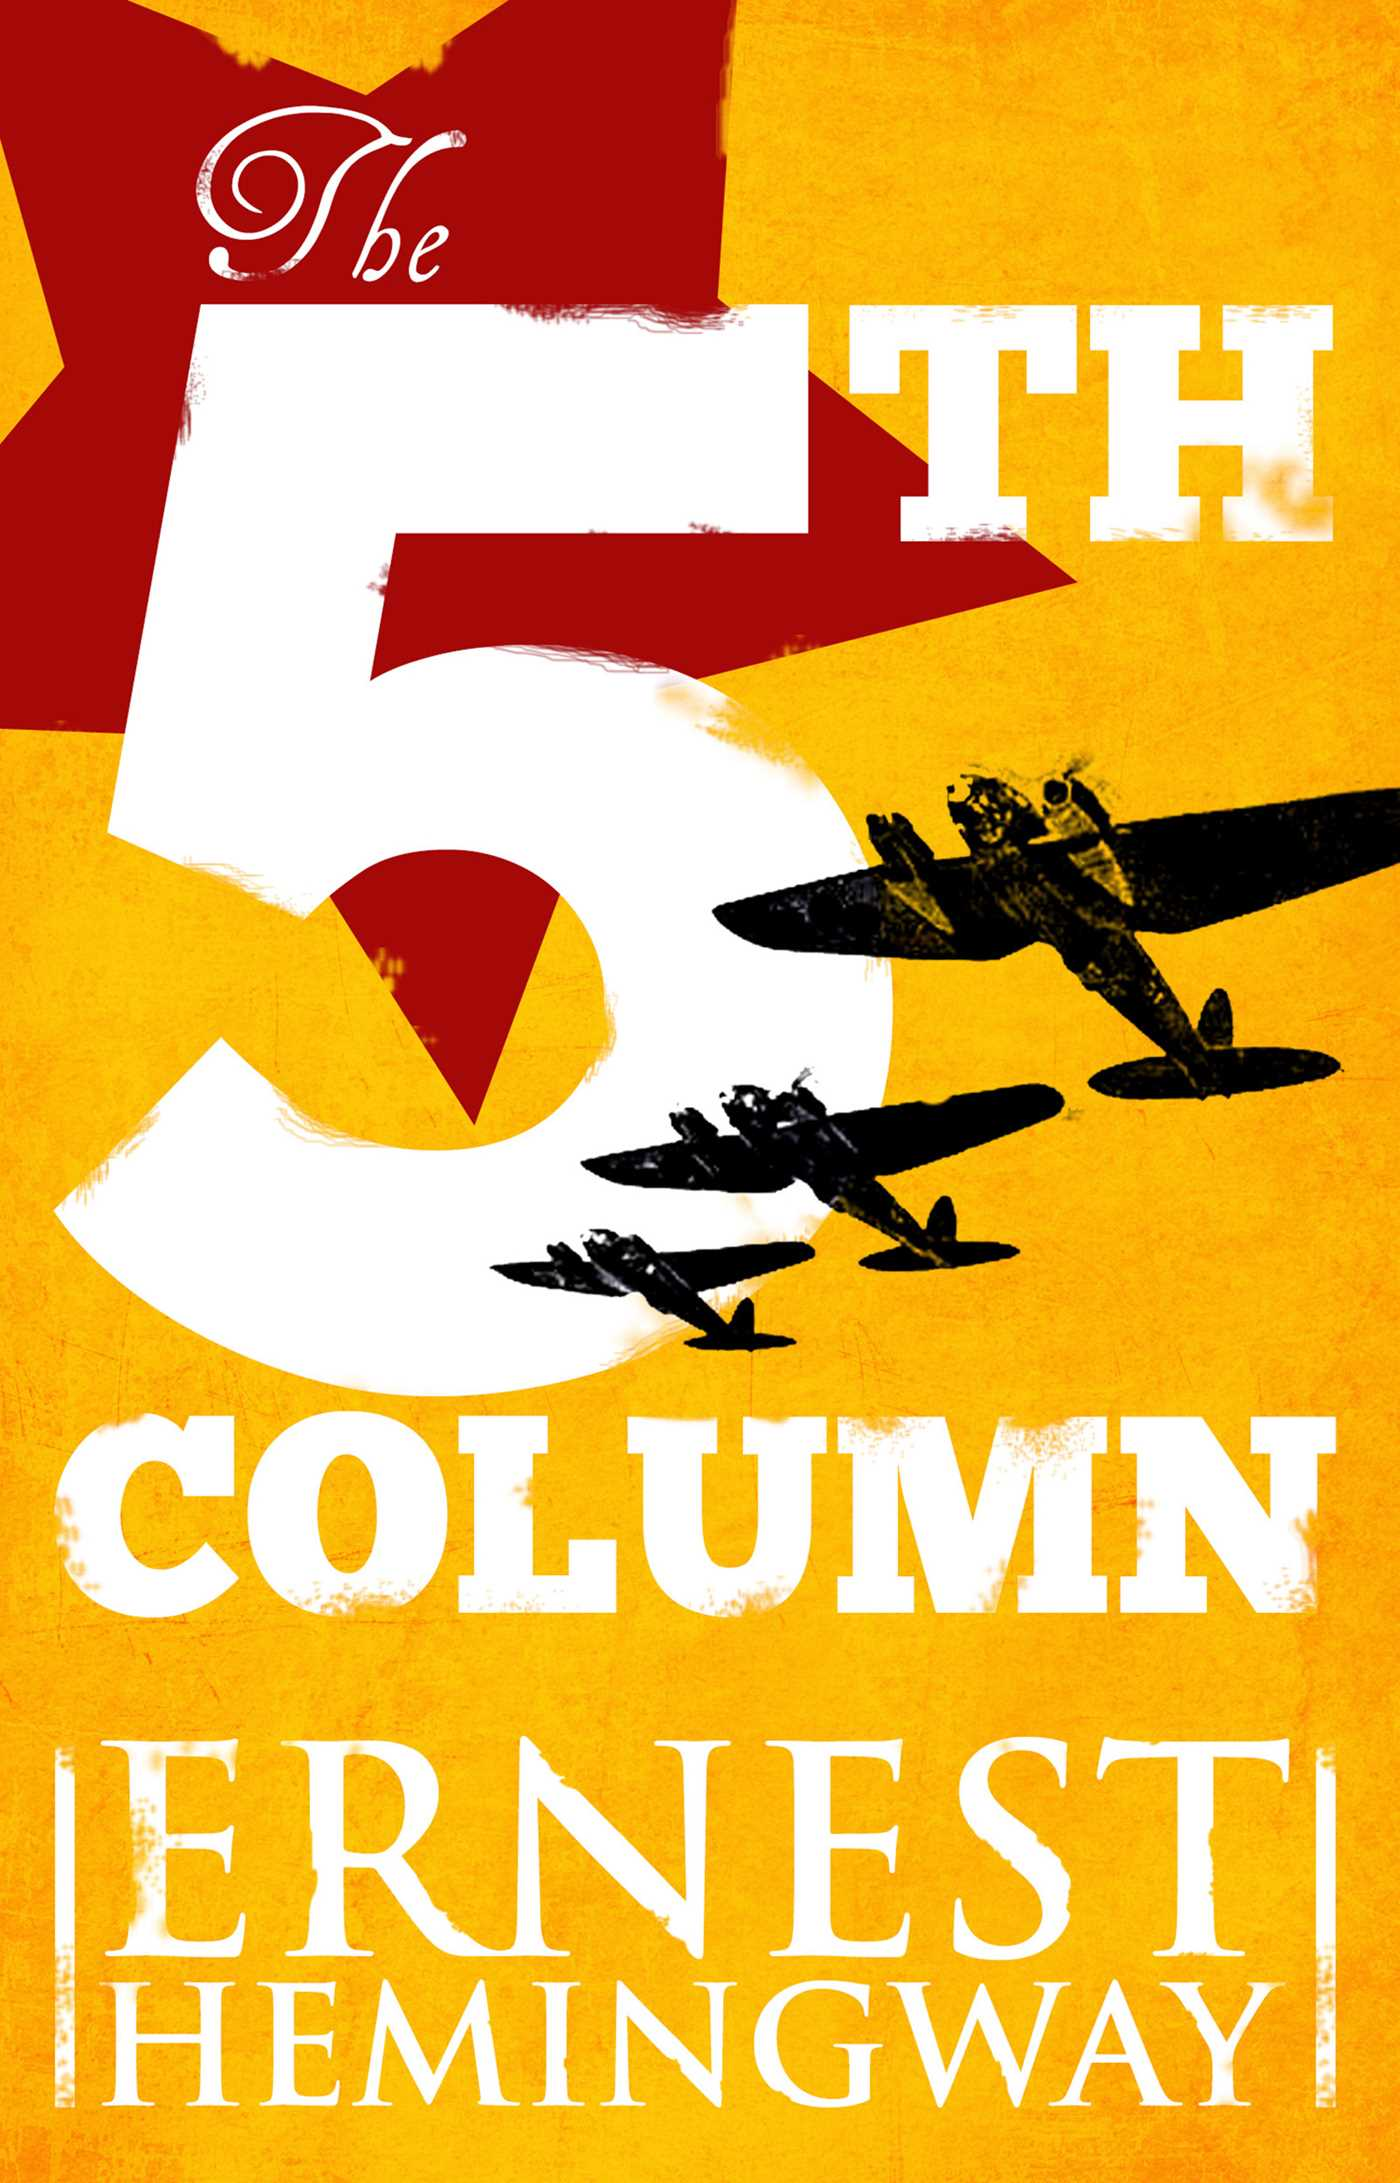 Fifth Column eBook by Ernest Hemingway | Official Publisher Page ...